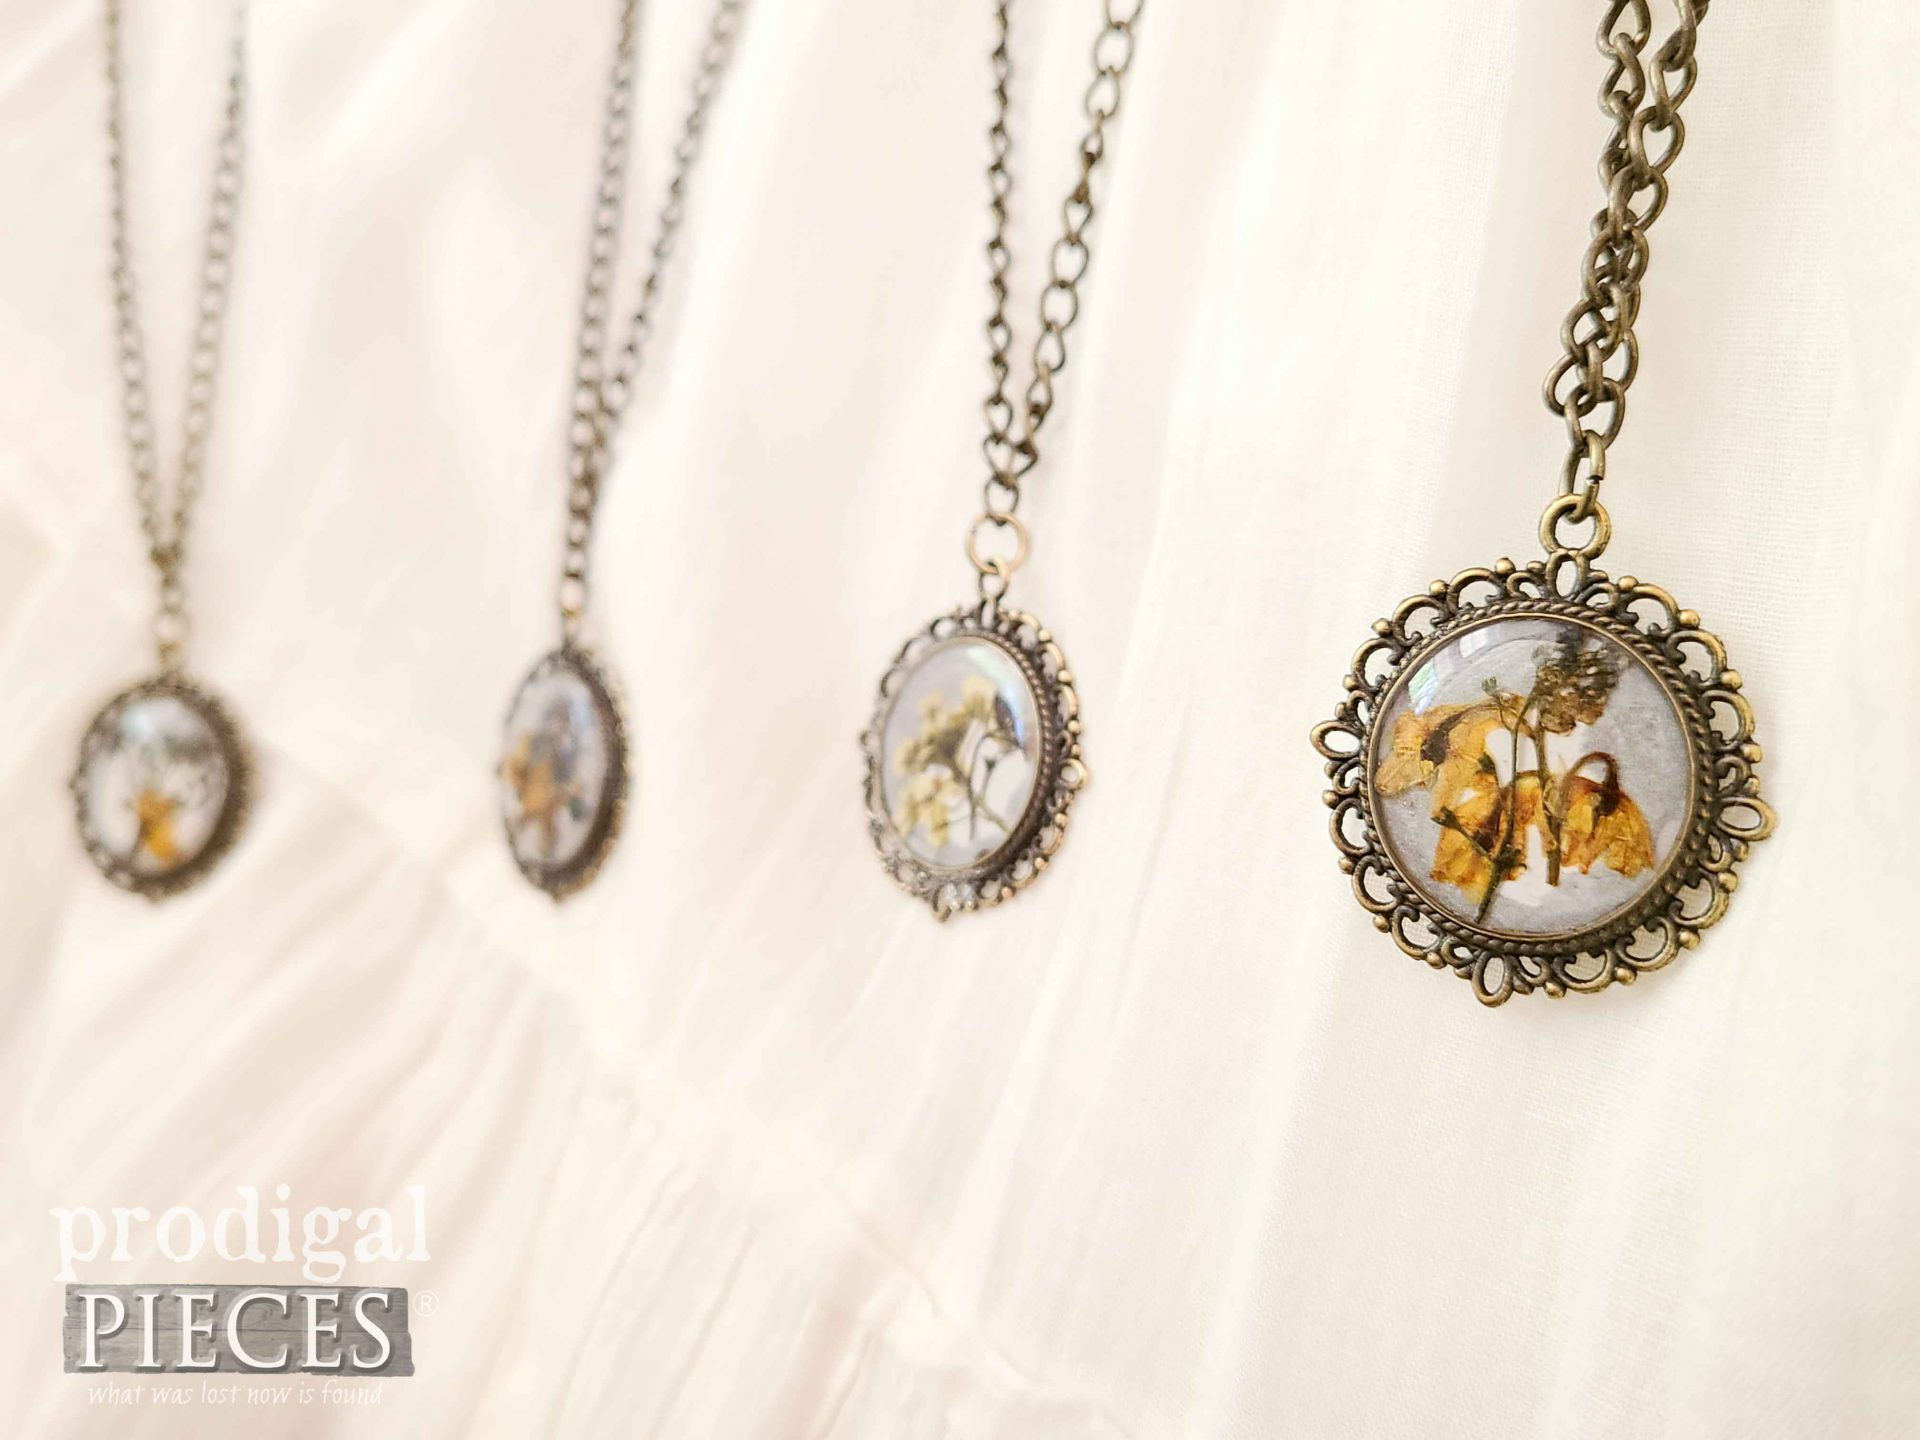 Handmade Flower Necklace Pendant with DIY Resin Tutorial by Larissa of Prodigal Pieces   prodigalpieces.com #prodigalpieces #giftidea #giftsforher #handmade #jewelry #heirloom